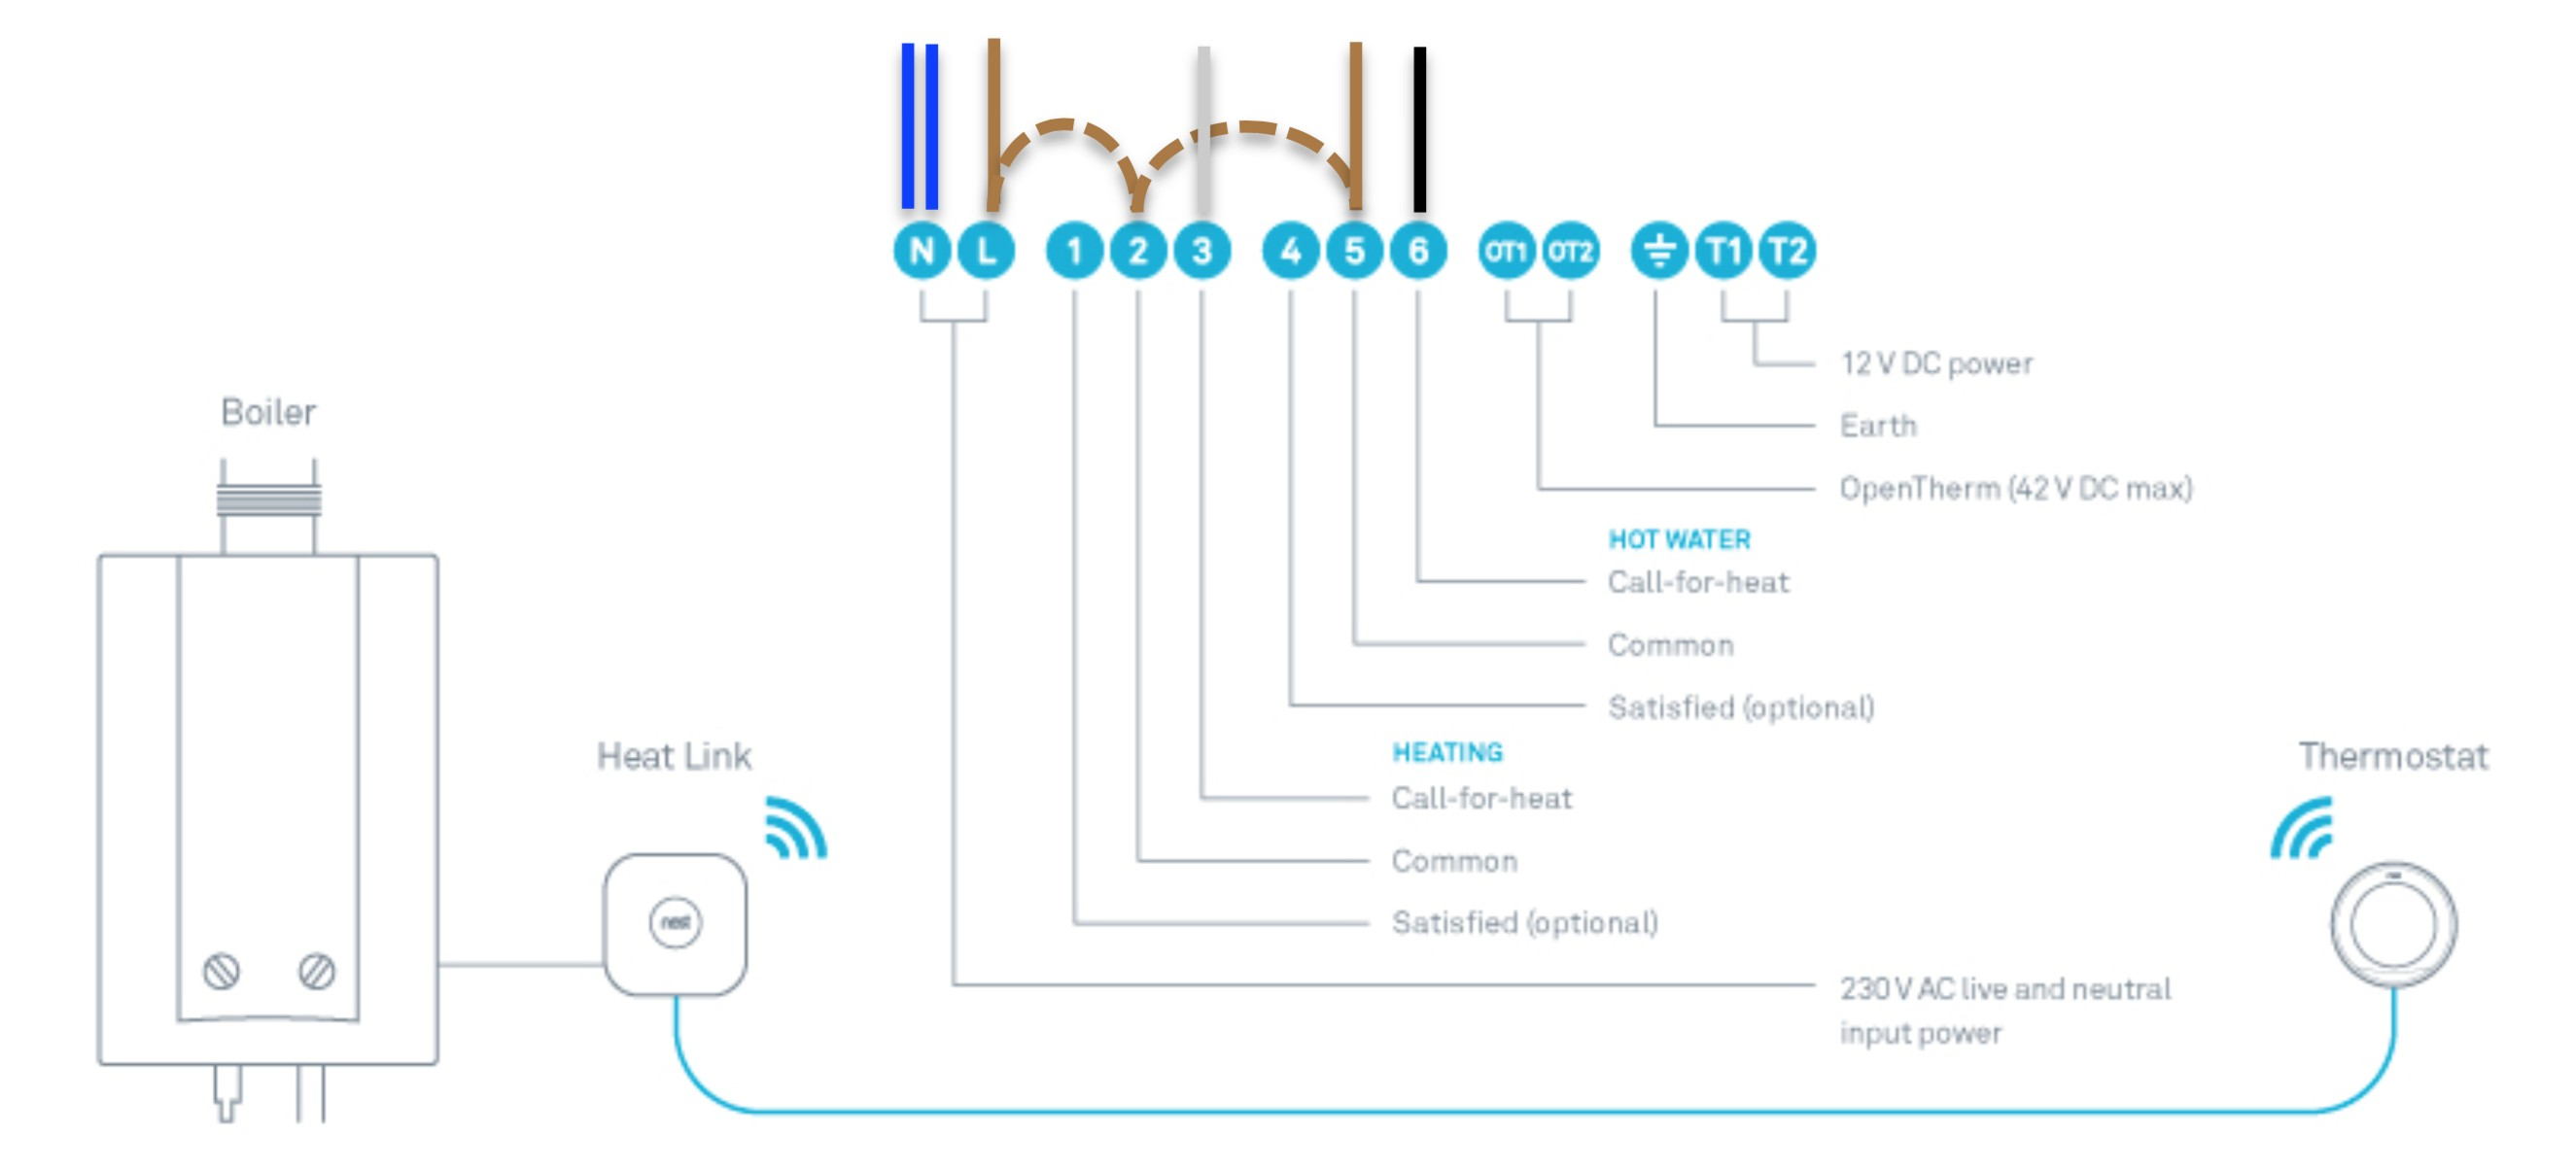 Nest thermostat Wiring Diagram New House Old Tech Replacing A Danfoss  Tp9000 with A Nest 3rd